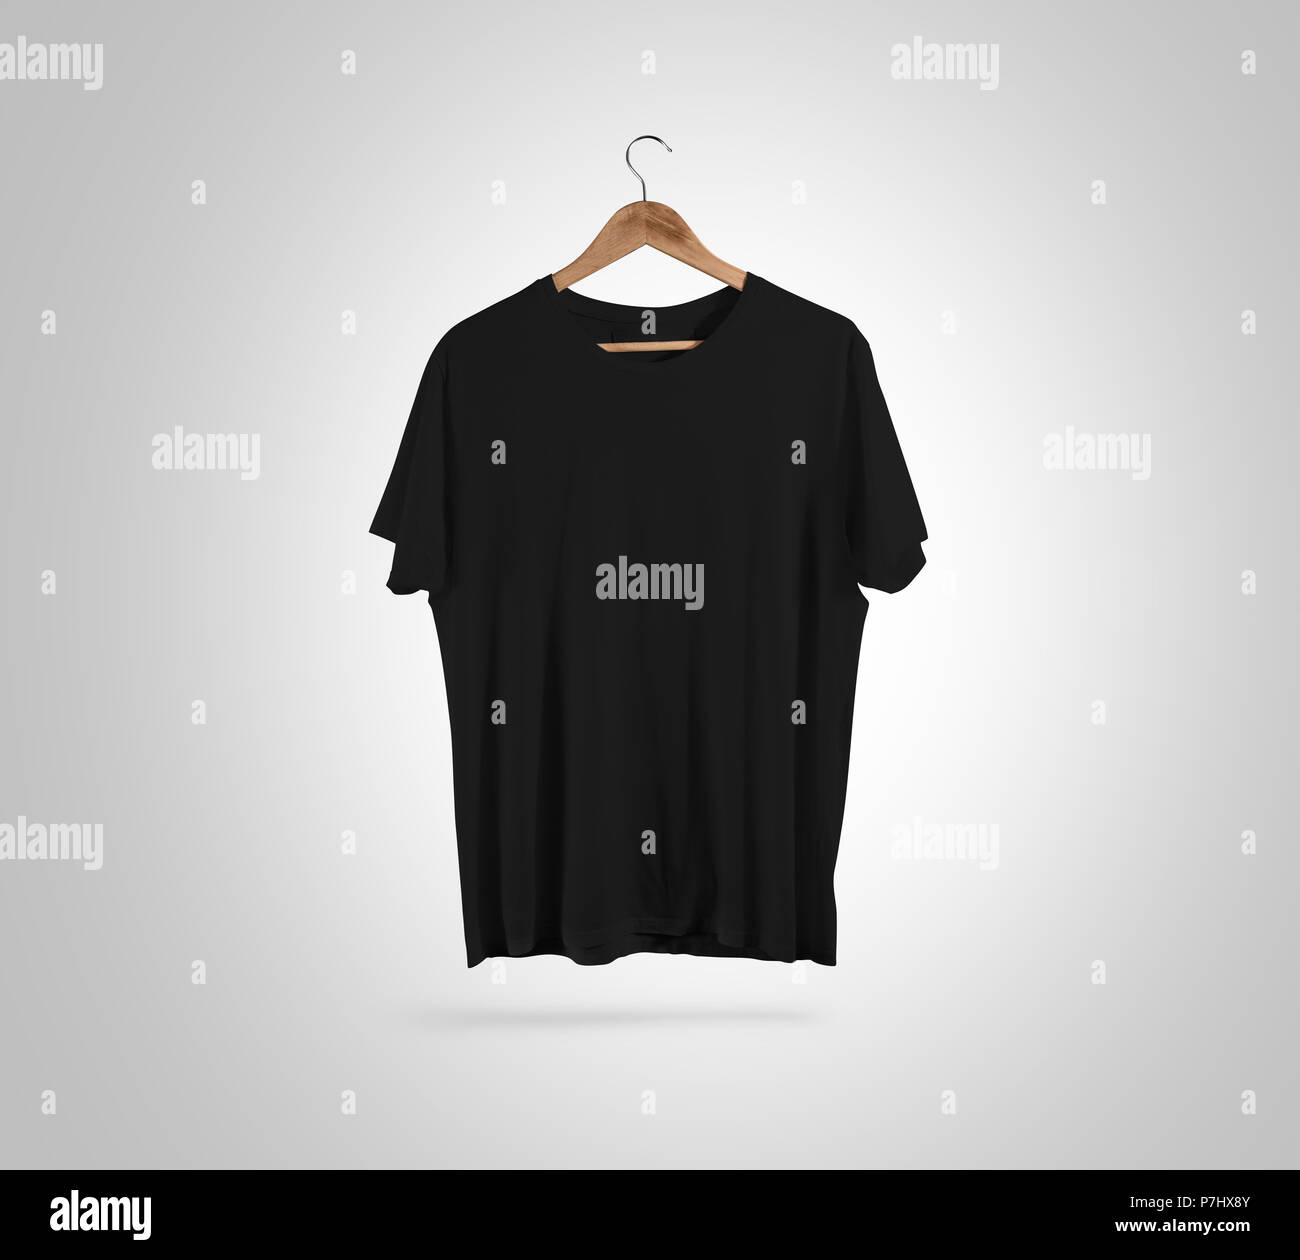 Blank black t shirt front side view on hanger design mockup blank black t shirt front side view on hanger design mockup clipping path gray clear plain cotton tshirt mock up template apparel store logo brand maxwellsz